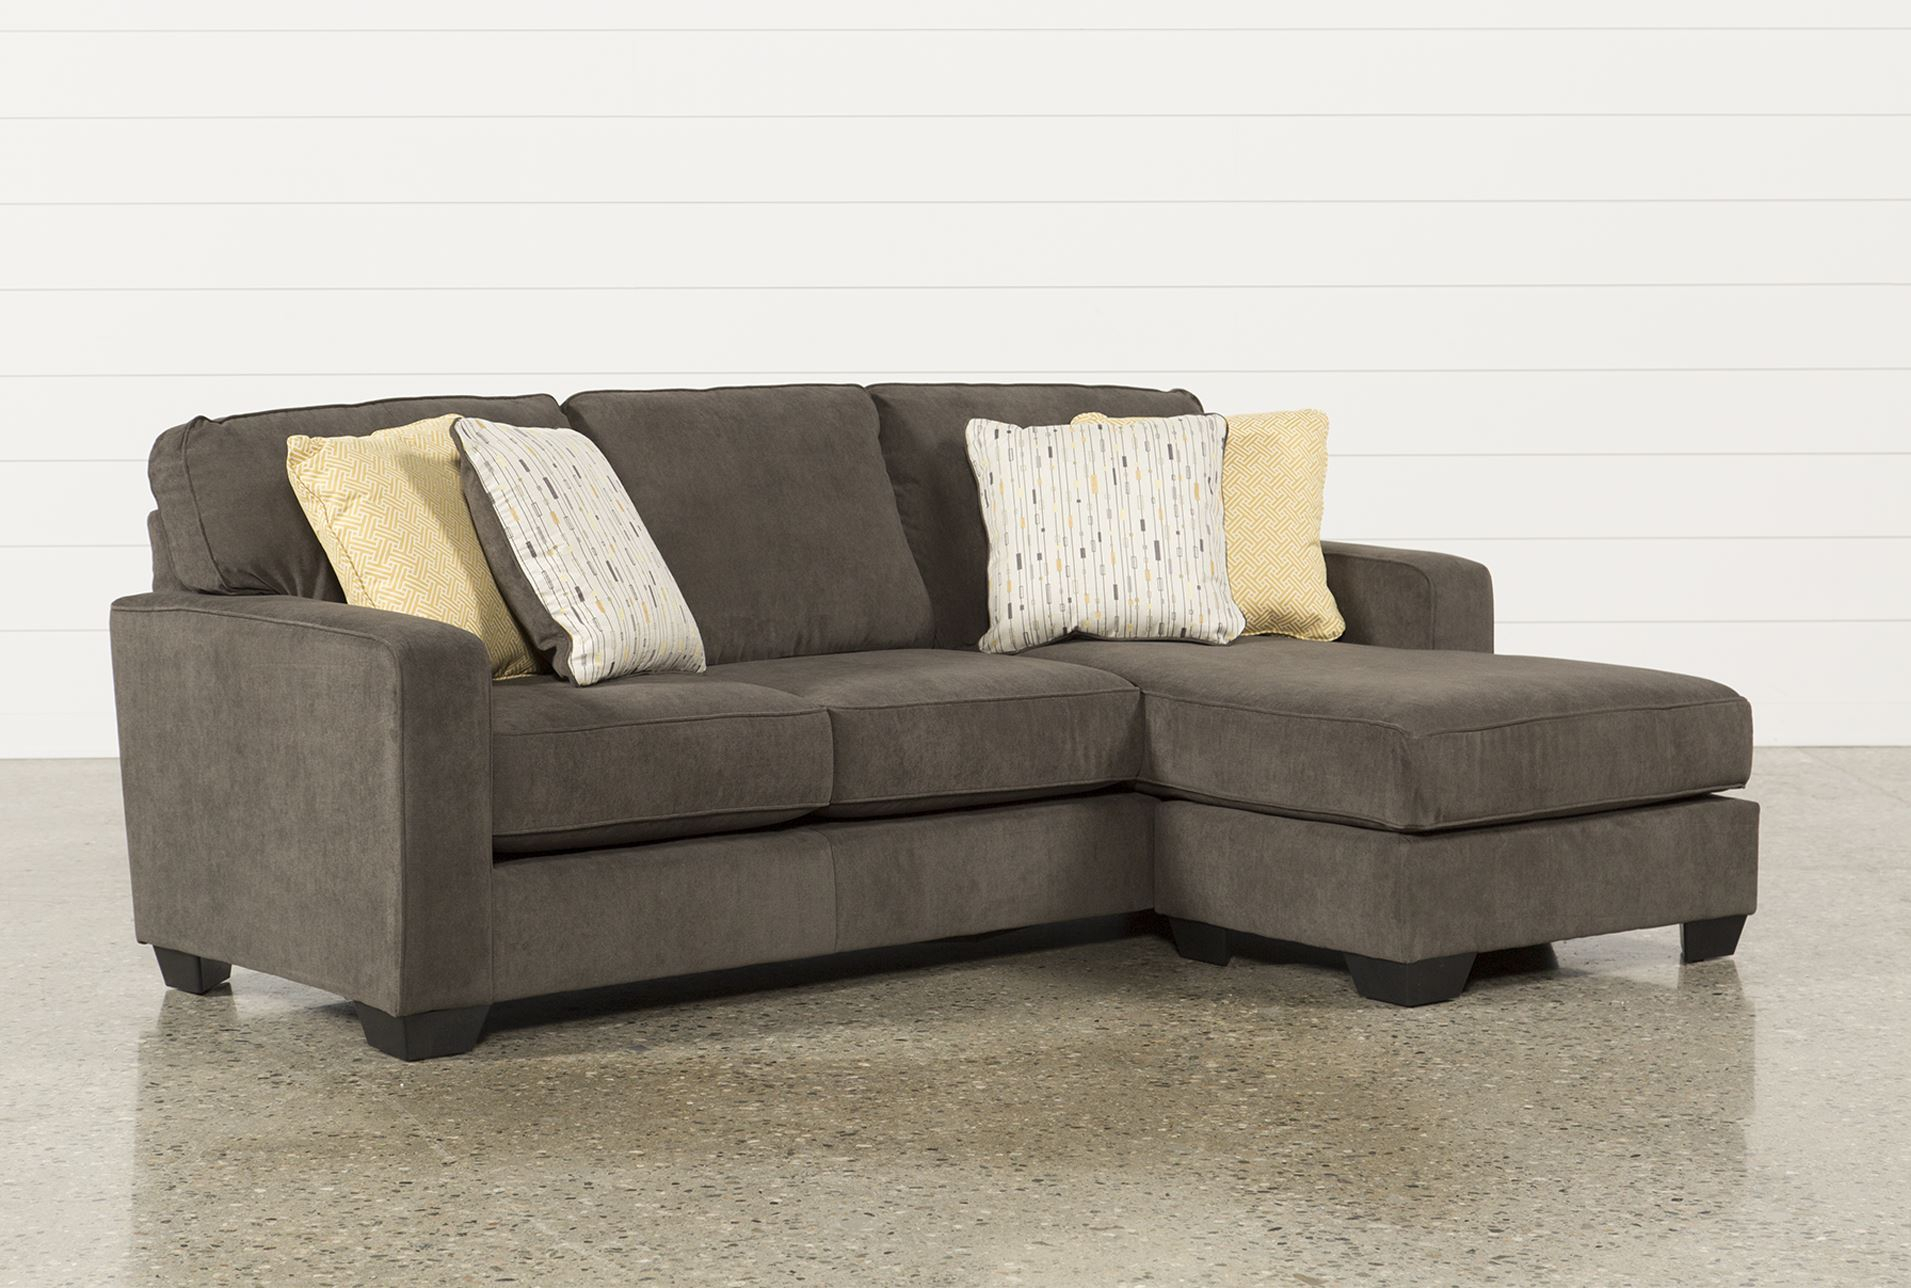 Colour Slipcovers Pillows Covers Couch Placement Glamour Schemes In Aquarius Dark Grey Sofa Chairs (Image 12 of 20)